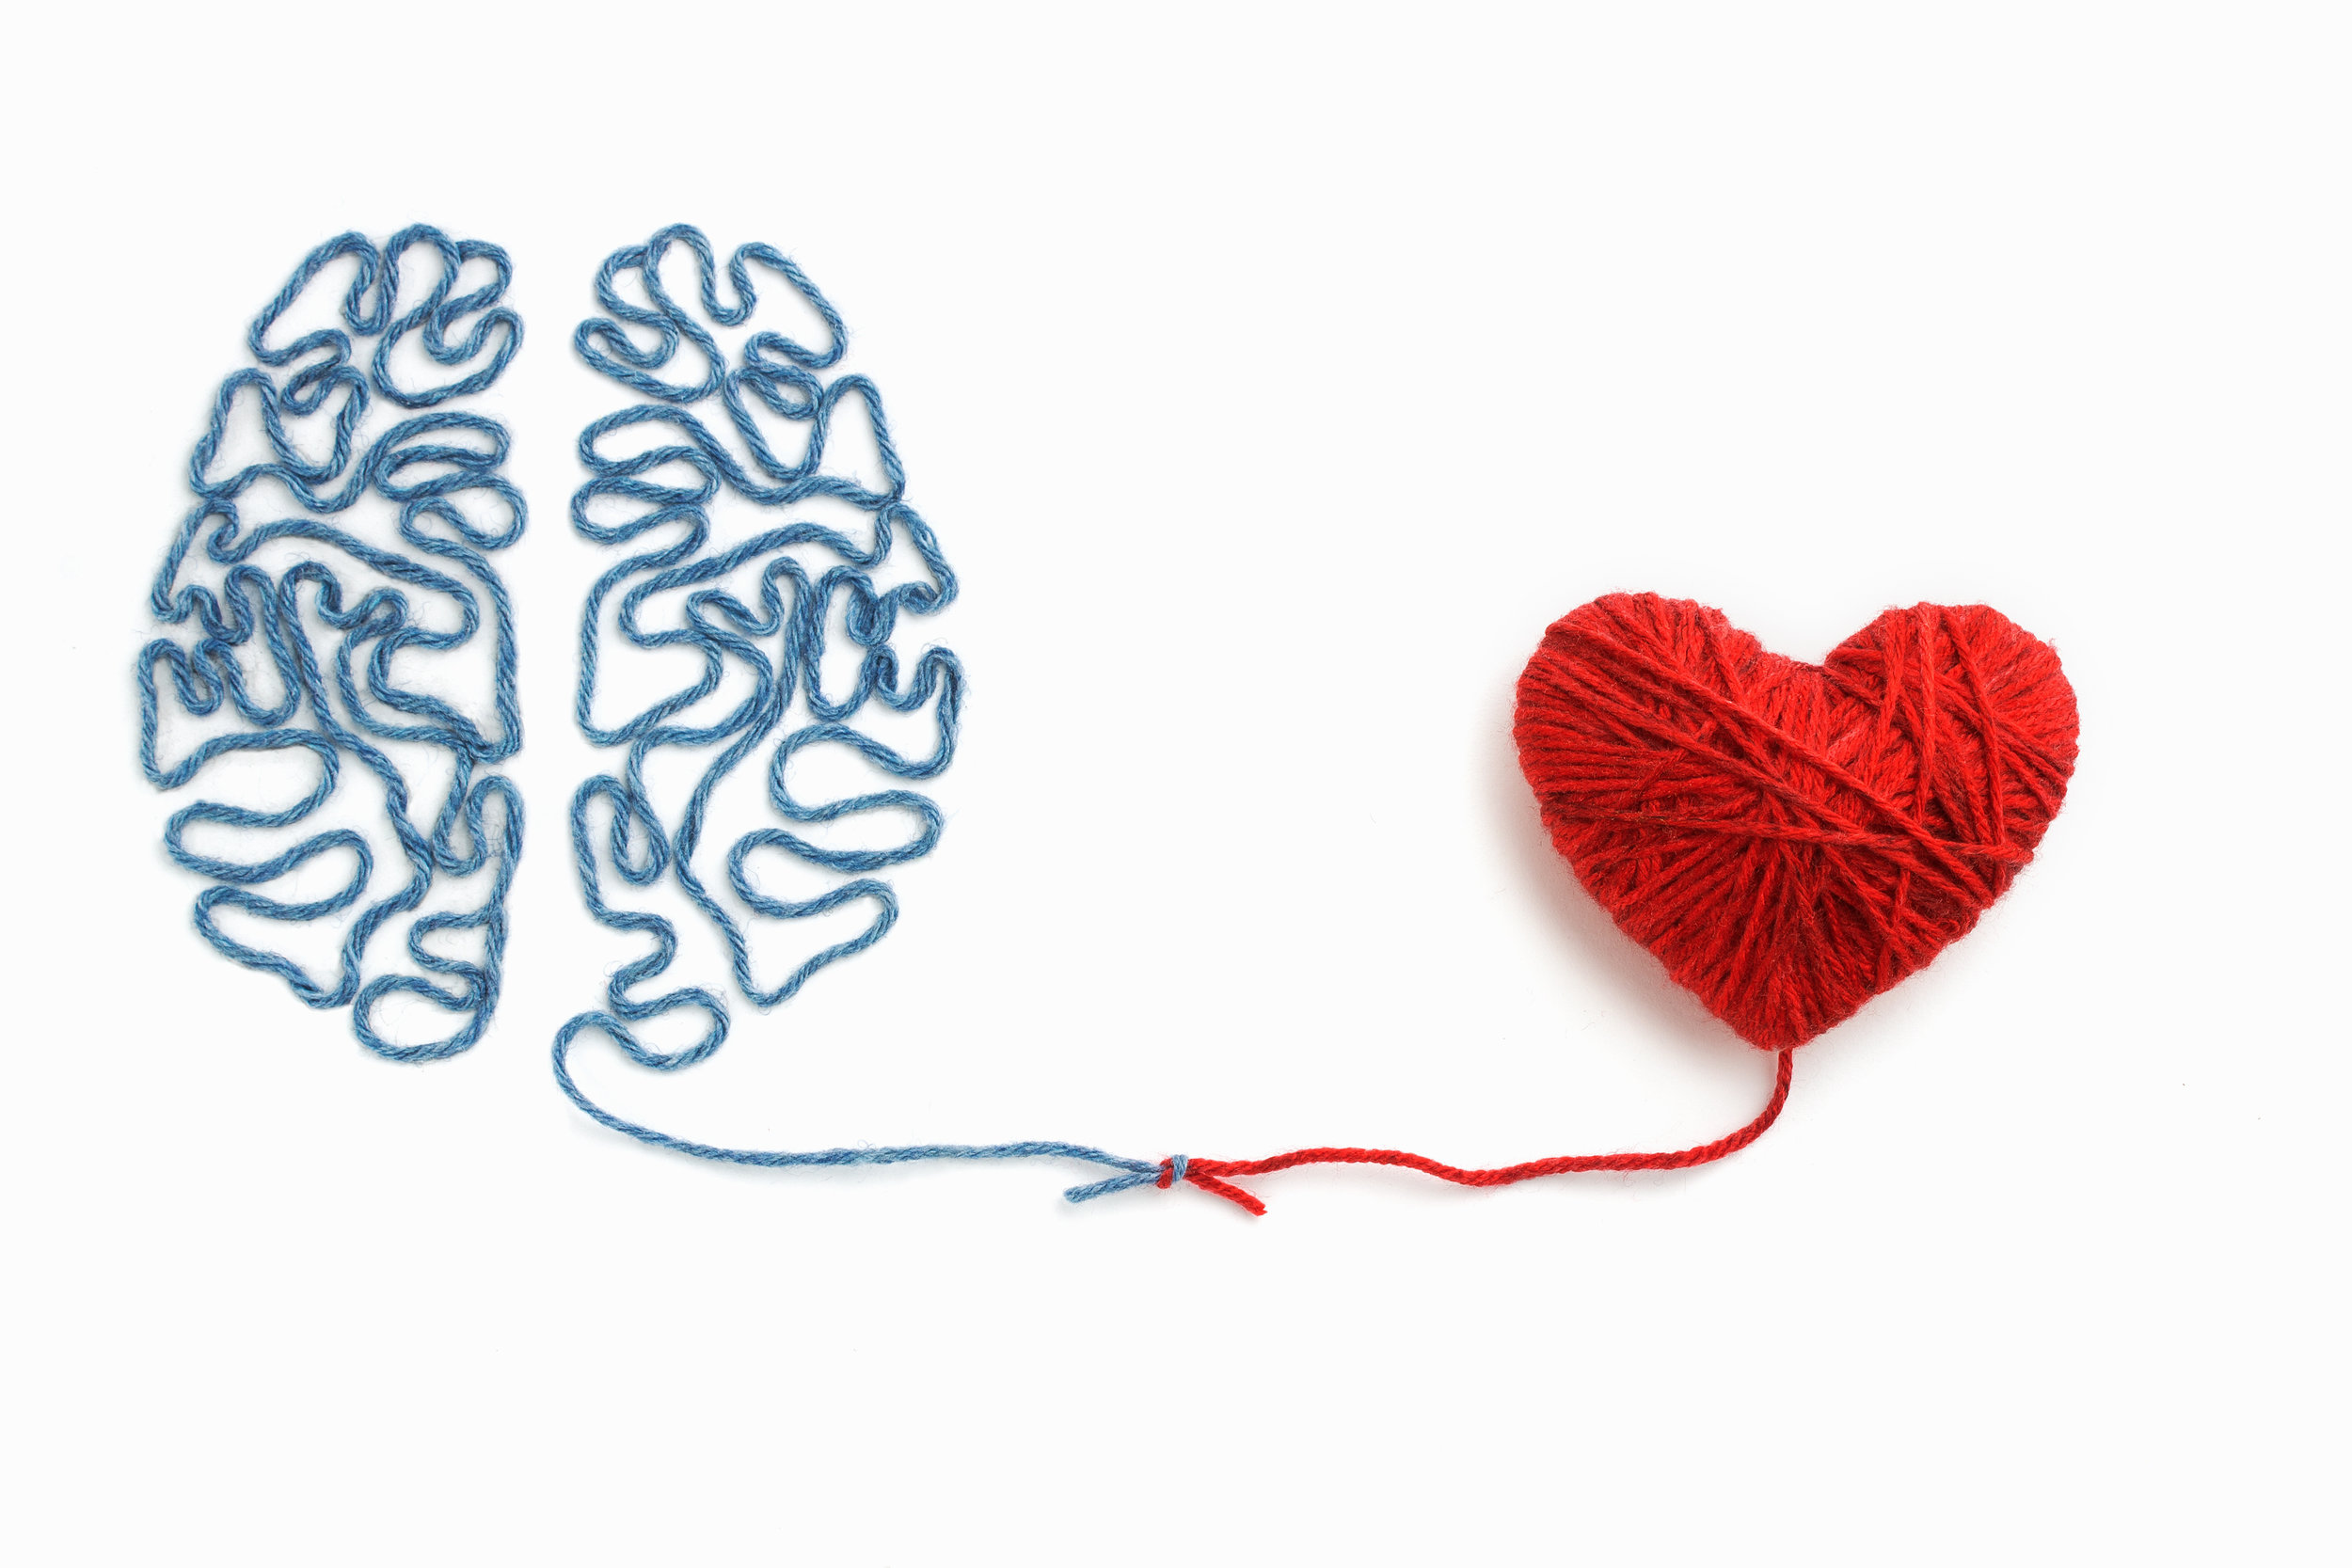 Using cutting edge and innovative techniques like Functional Neurology, NeuroEmotional Technique (NET) and BioGeometric Integration (BGI) we help RECONNECT you to the healthy, vibrant you.